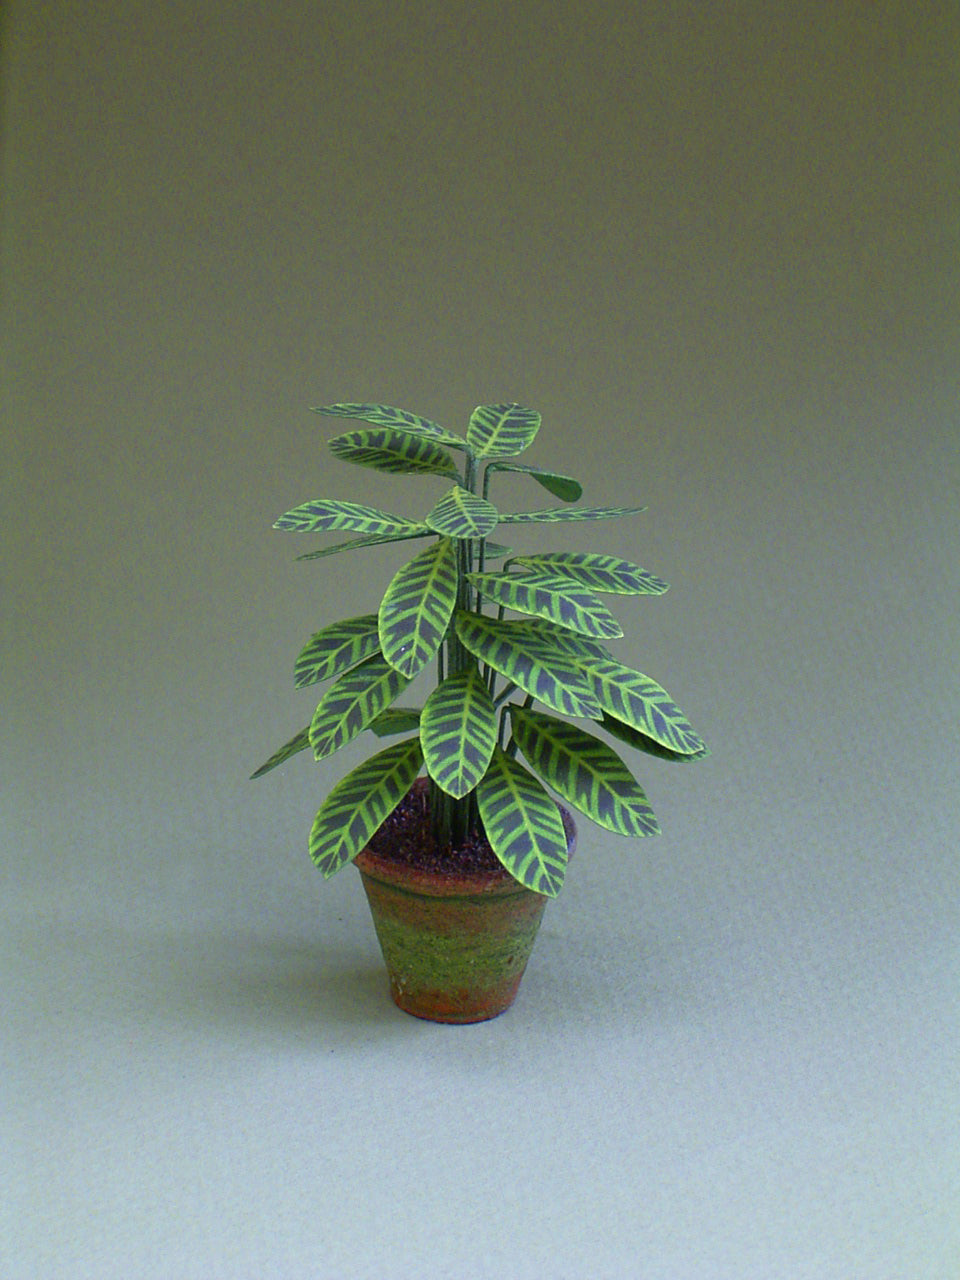 Maranta Leaf Kit  for 1/12th scale Dollhouses, Florists and Miniature Gardens